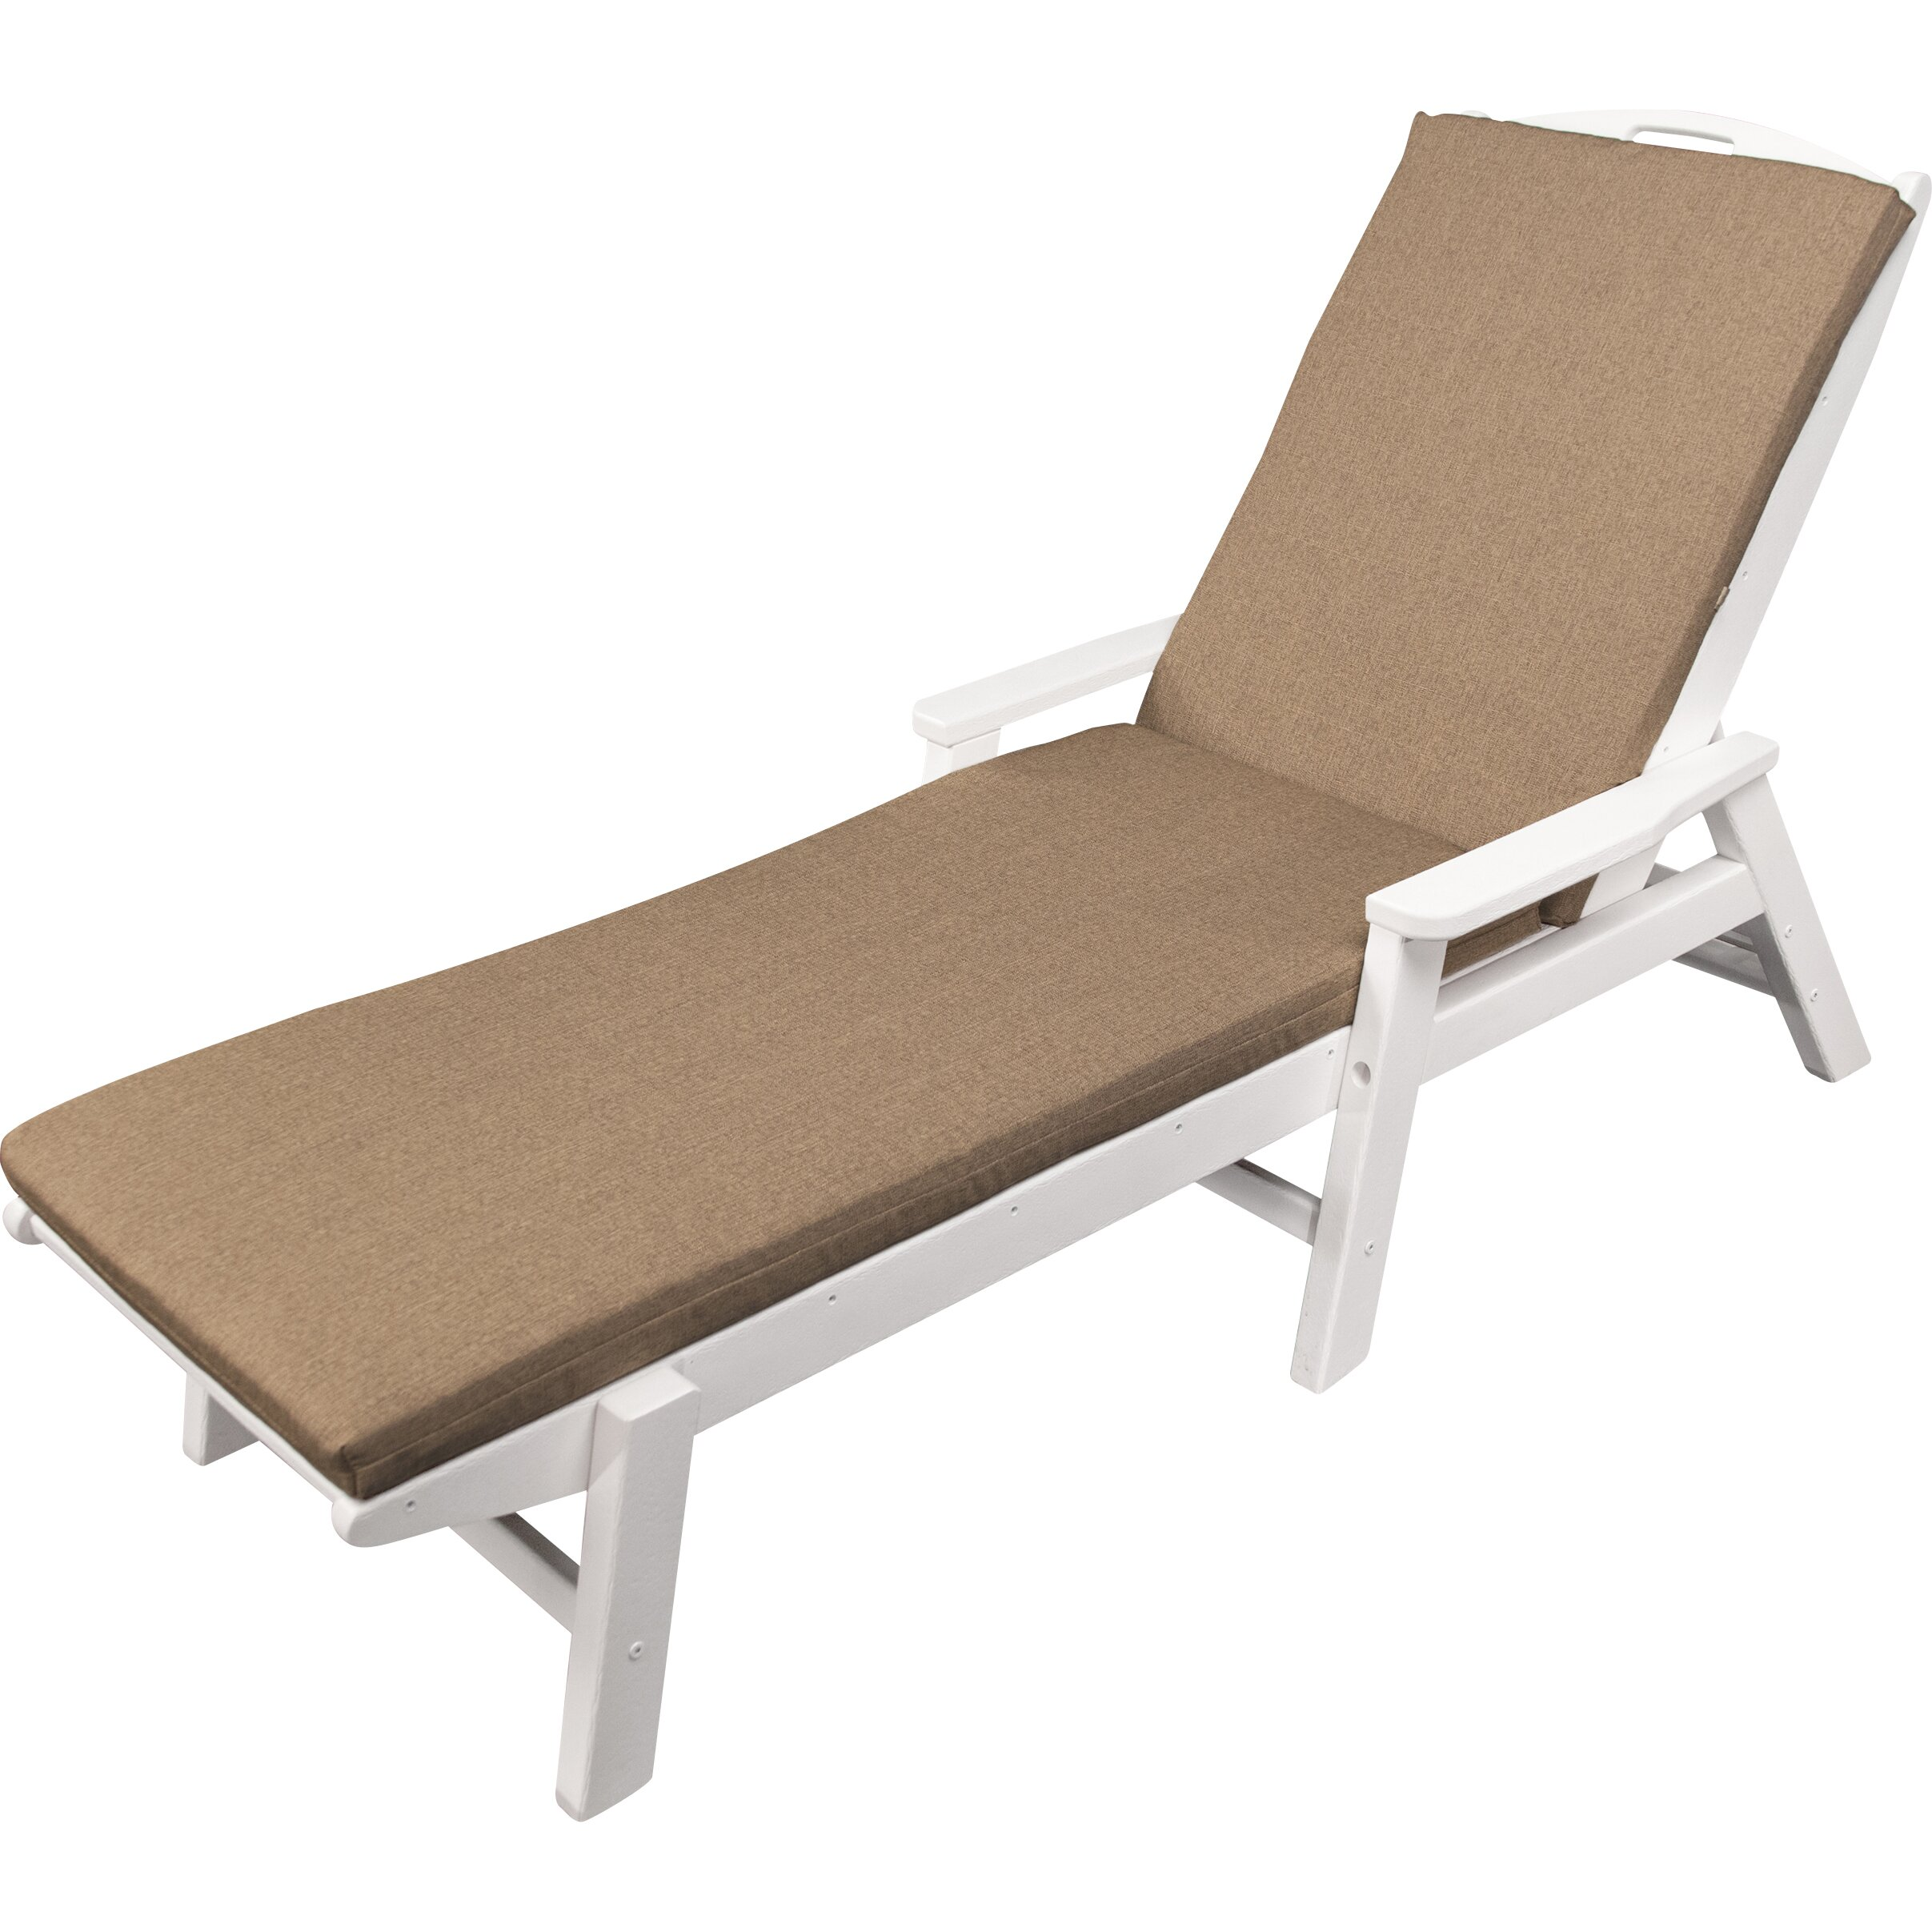 Ateeva outdoor sunbrella chaise lounge cushion reviews for Chaise cushion sale